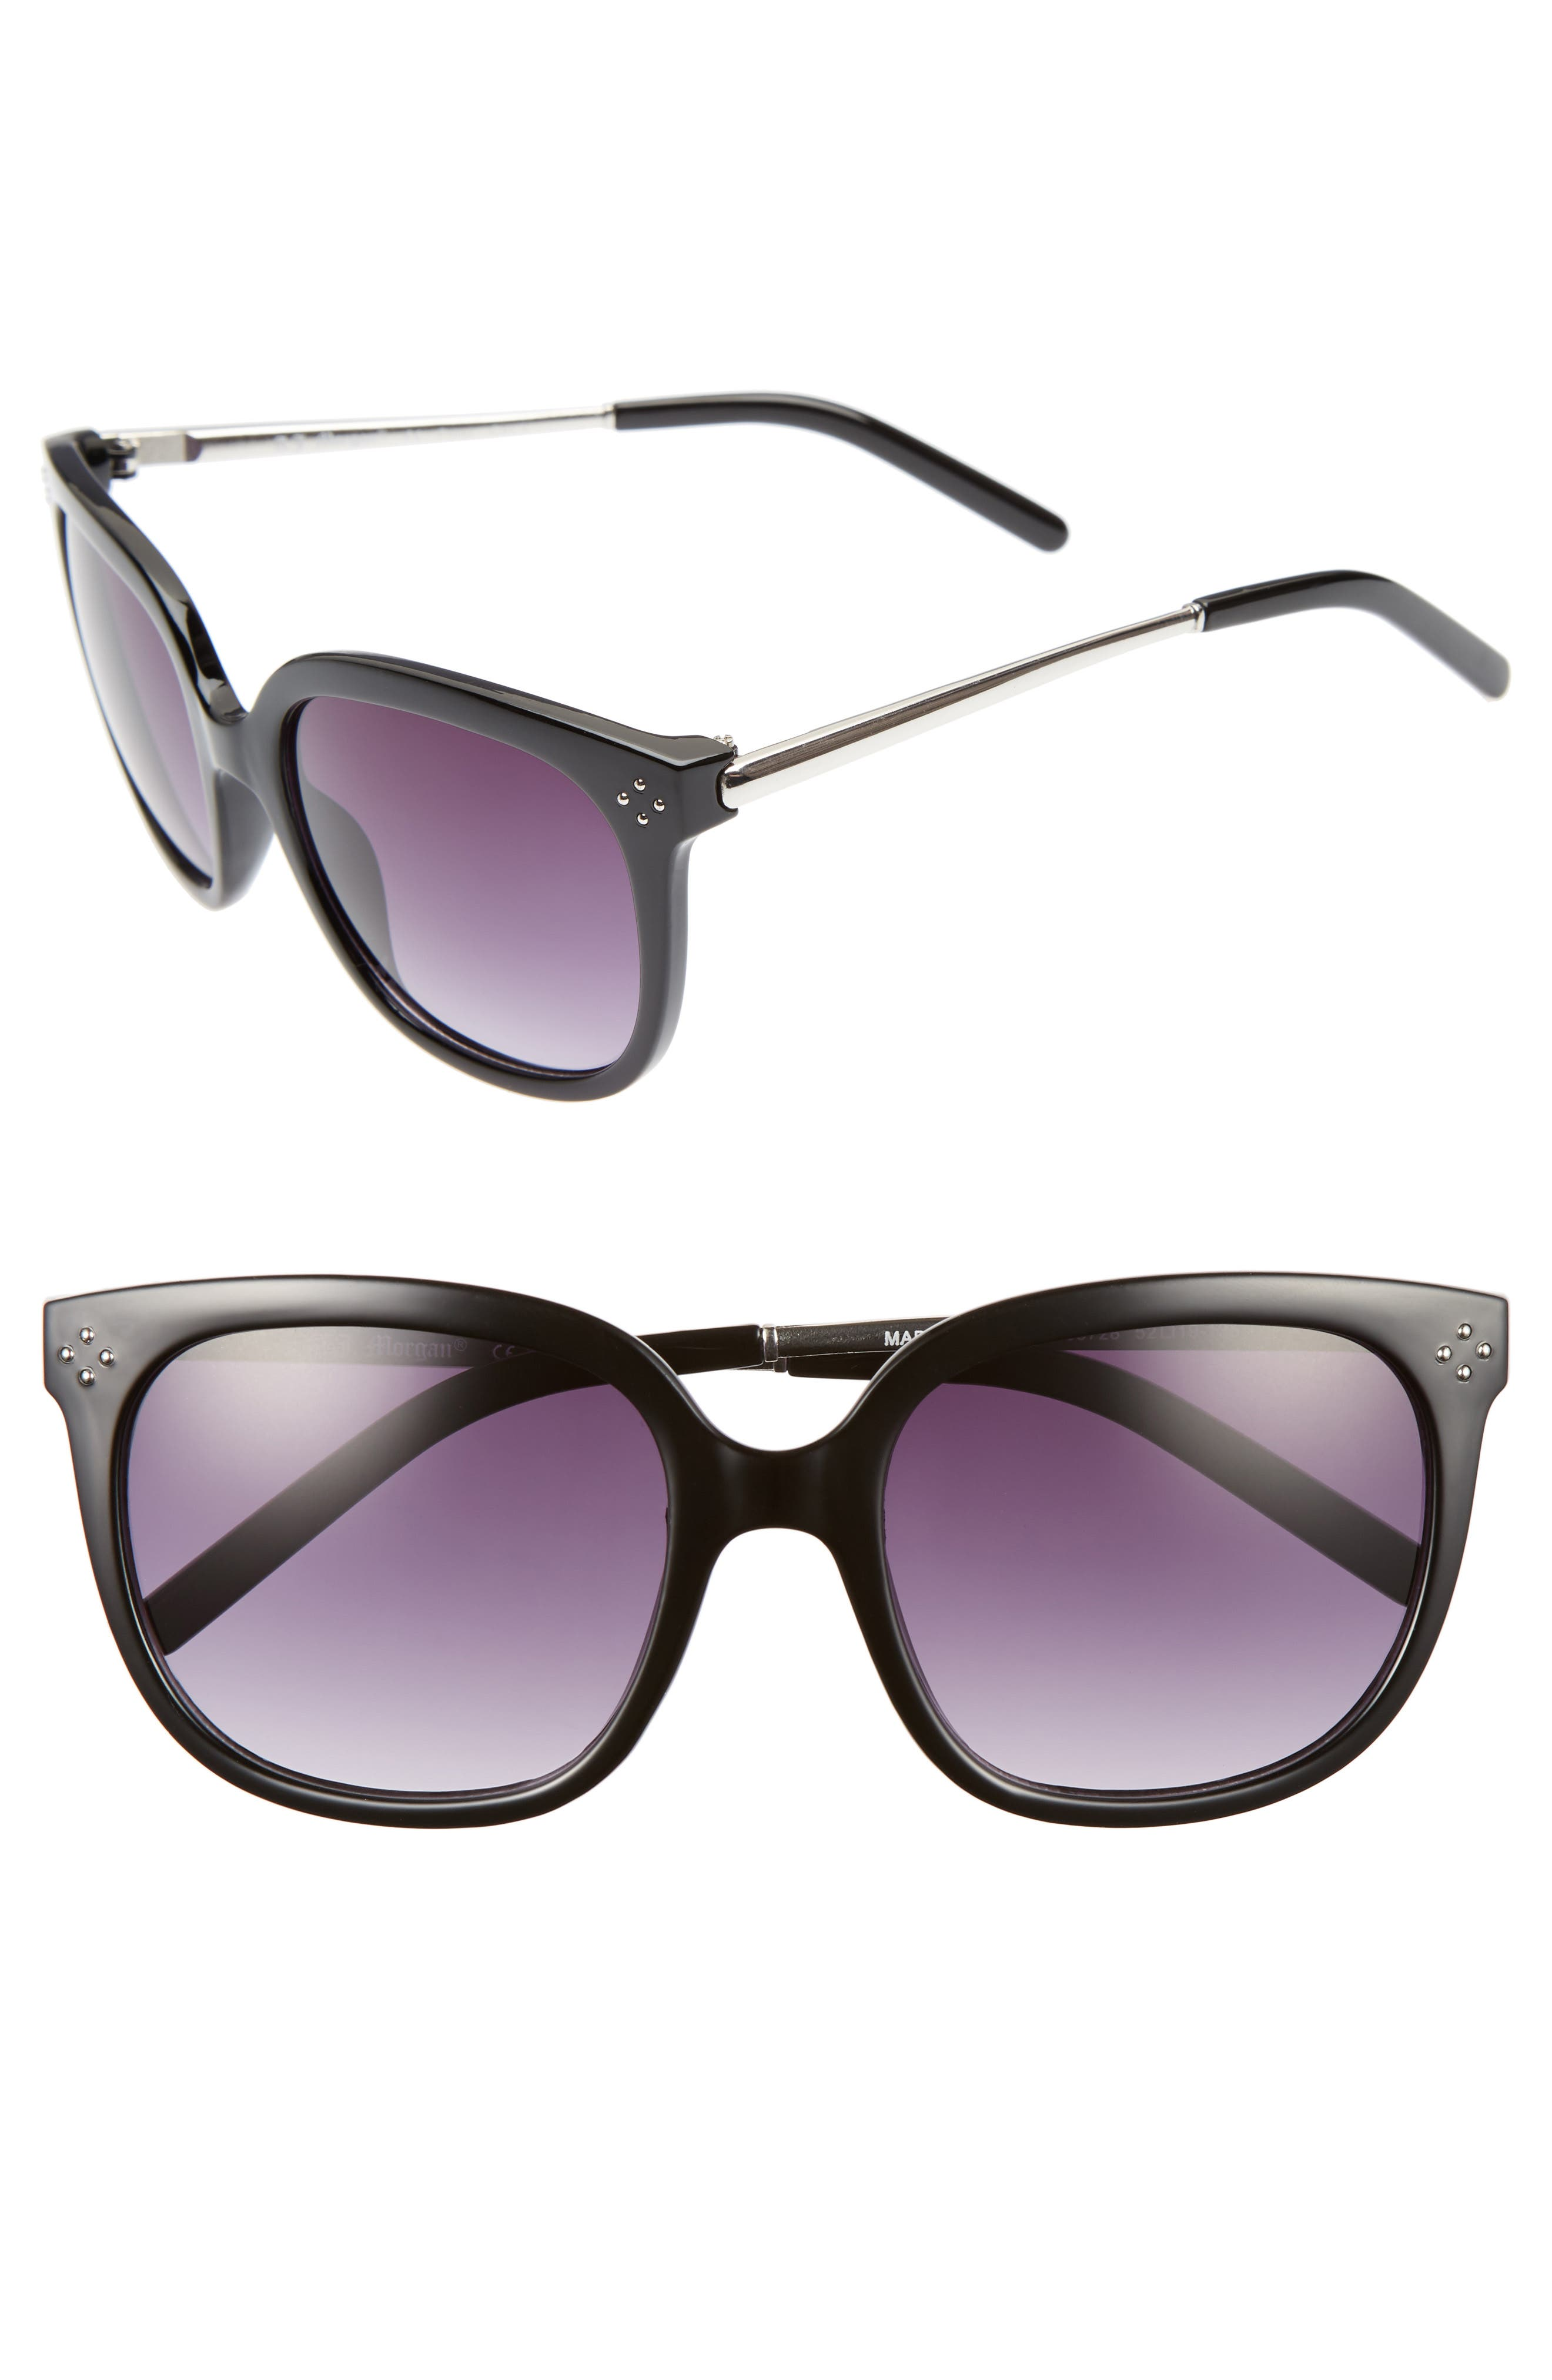 Dowager 52mm Sunglasses,                         Main,                         color, 001